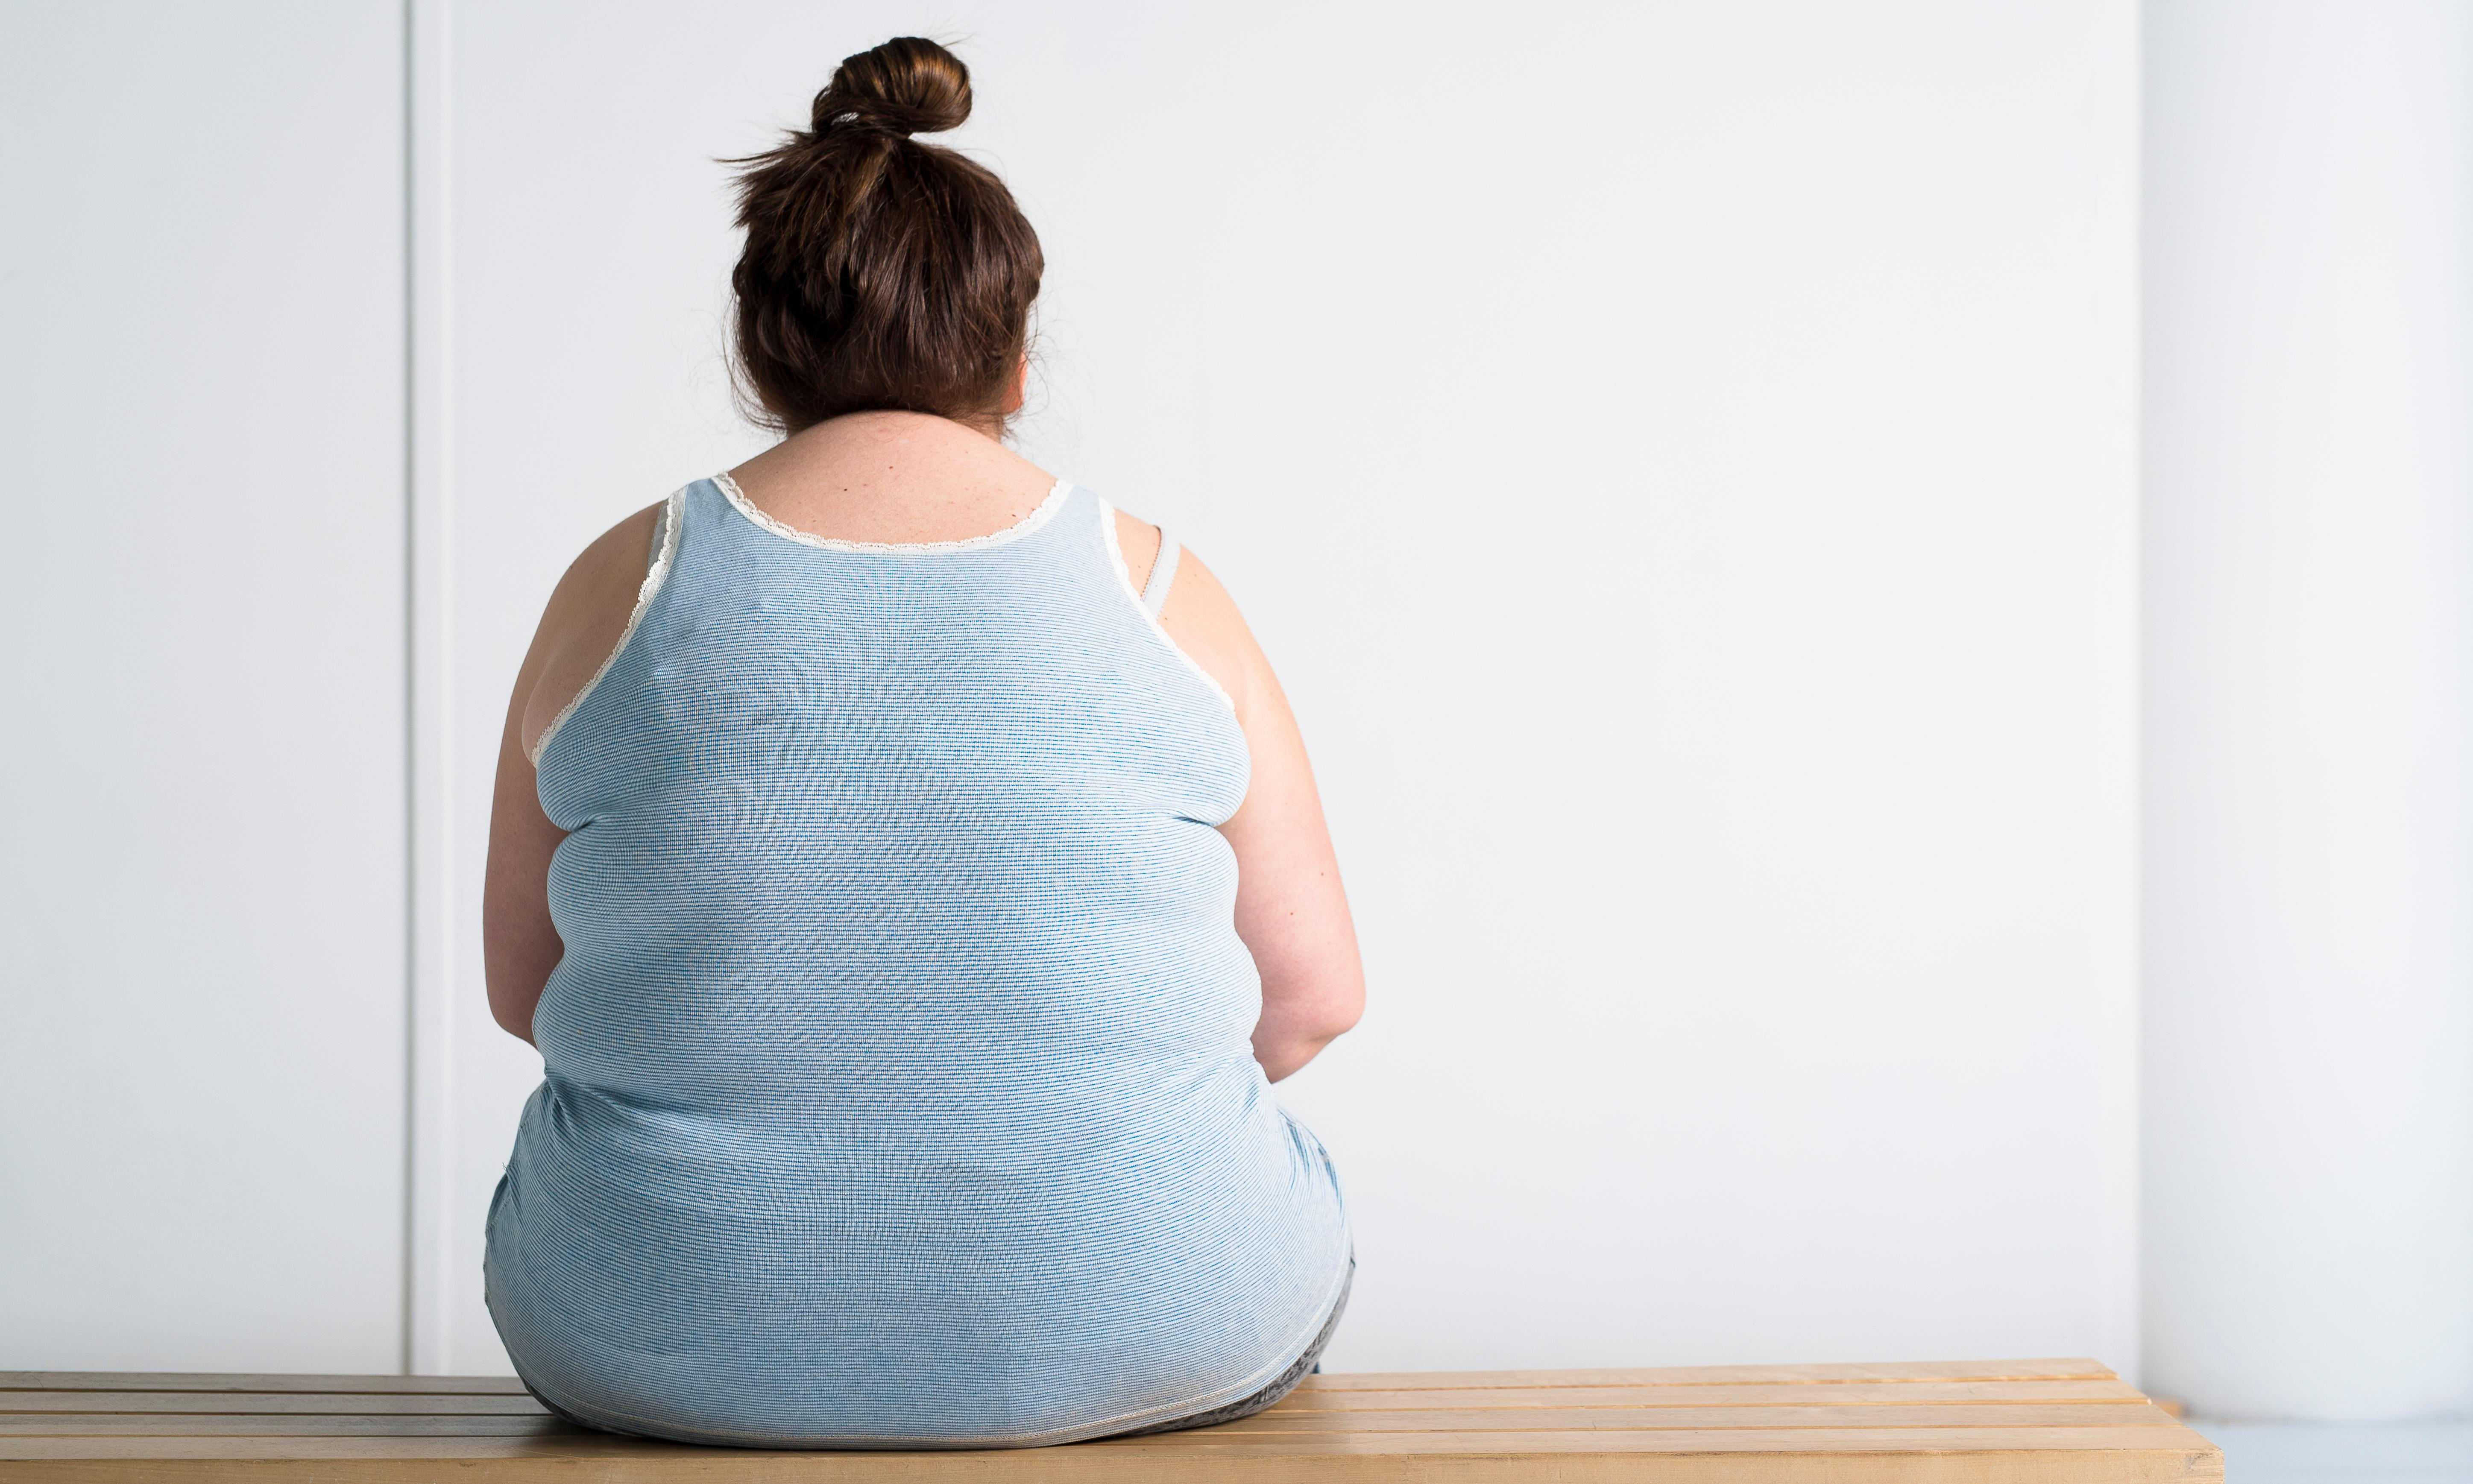 Genetic link between obesity and depression uncovered, say scientists | Society